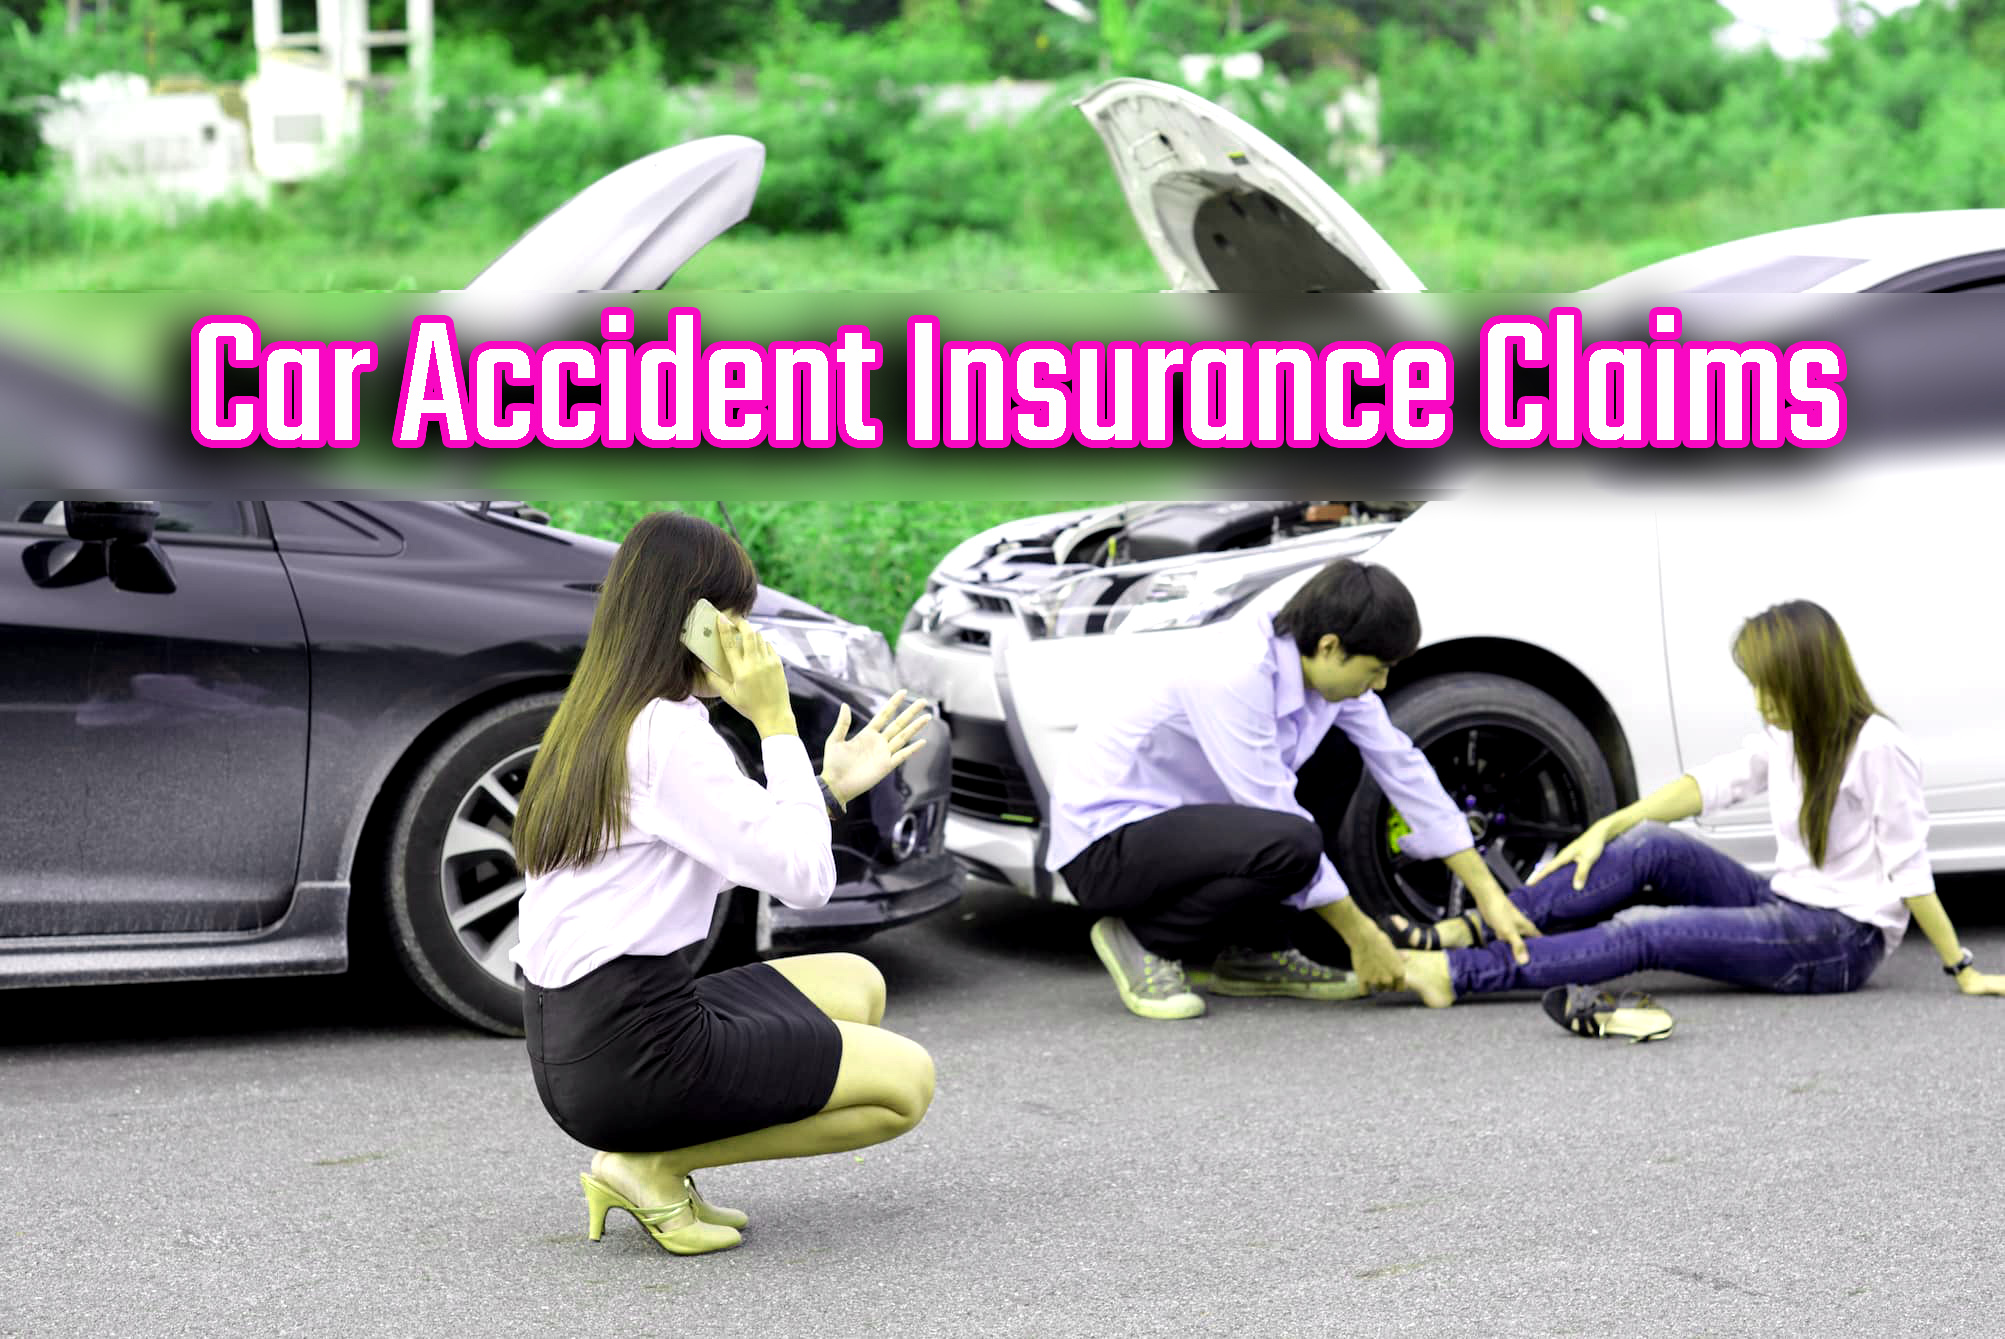 How to Make a Insurance Claims After an Car Accident In Hindi